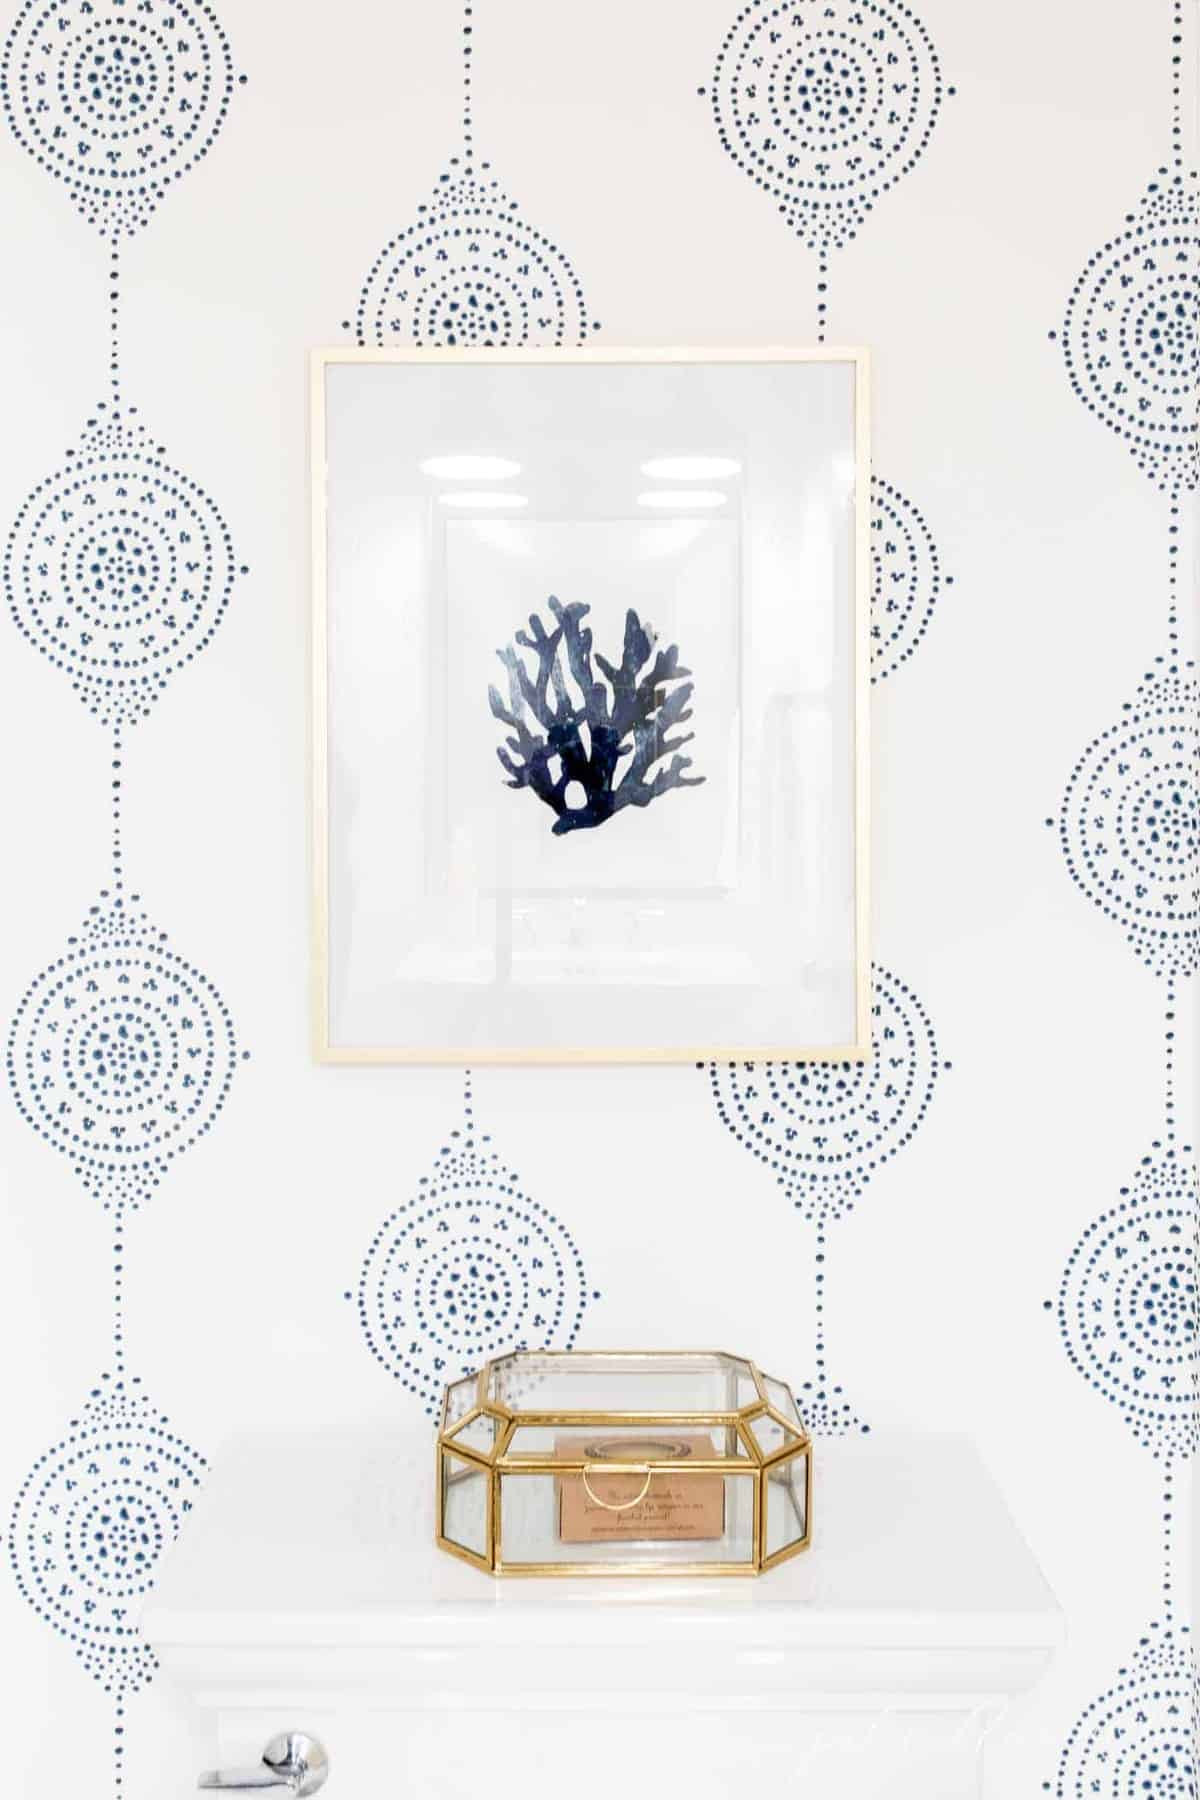 Blue and white patterned bathroom wallpaper with seashell art over the toilet.